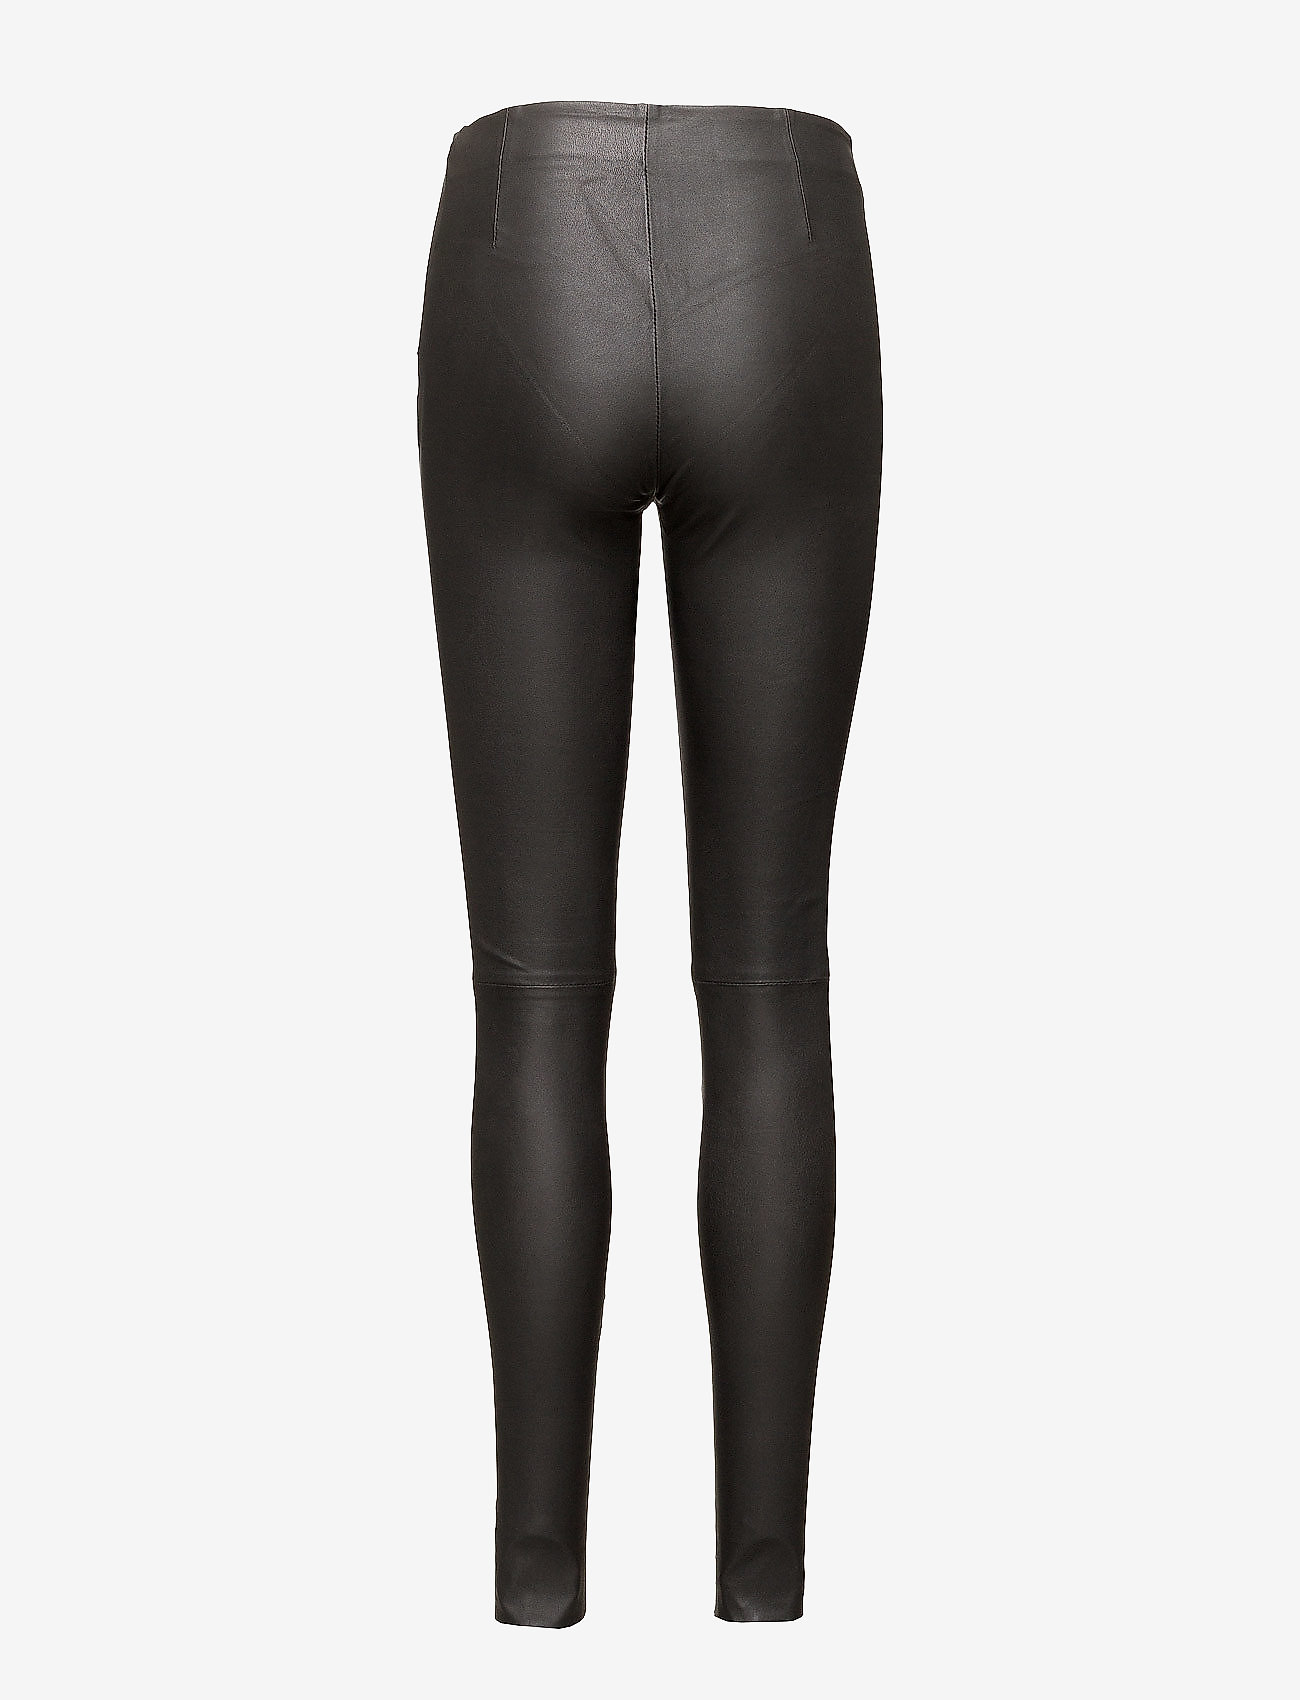 Selected Femme - SLFSYLVIA MW STRETCH LEATHER LEGGIN NOOS - læderbukser - black - 1